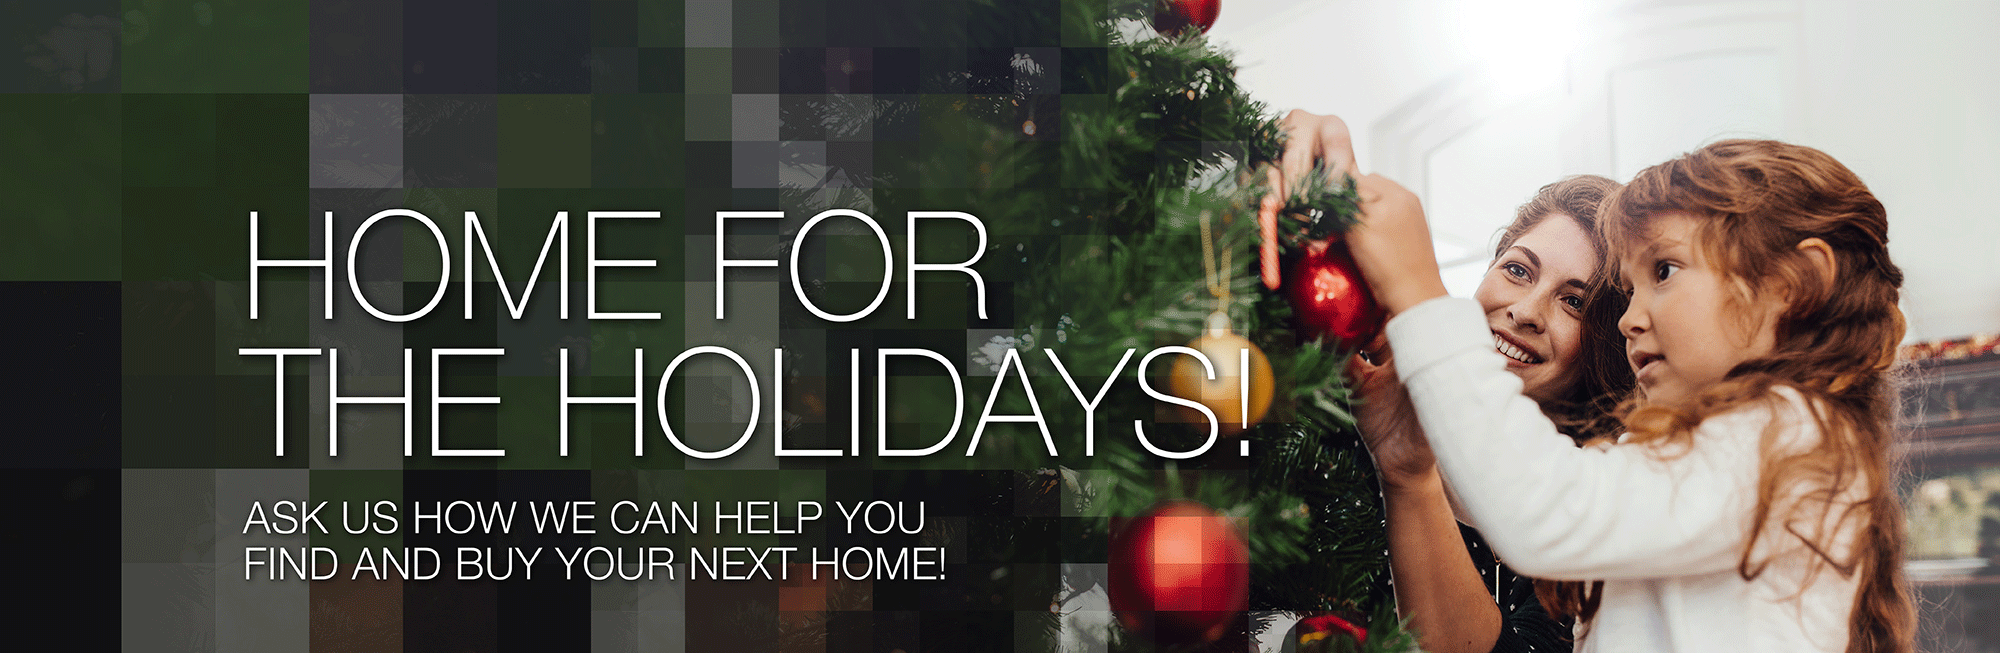 Ask us how we can help you find and buy your next home. Make it a home for the holidays!